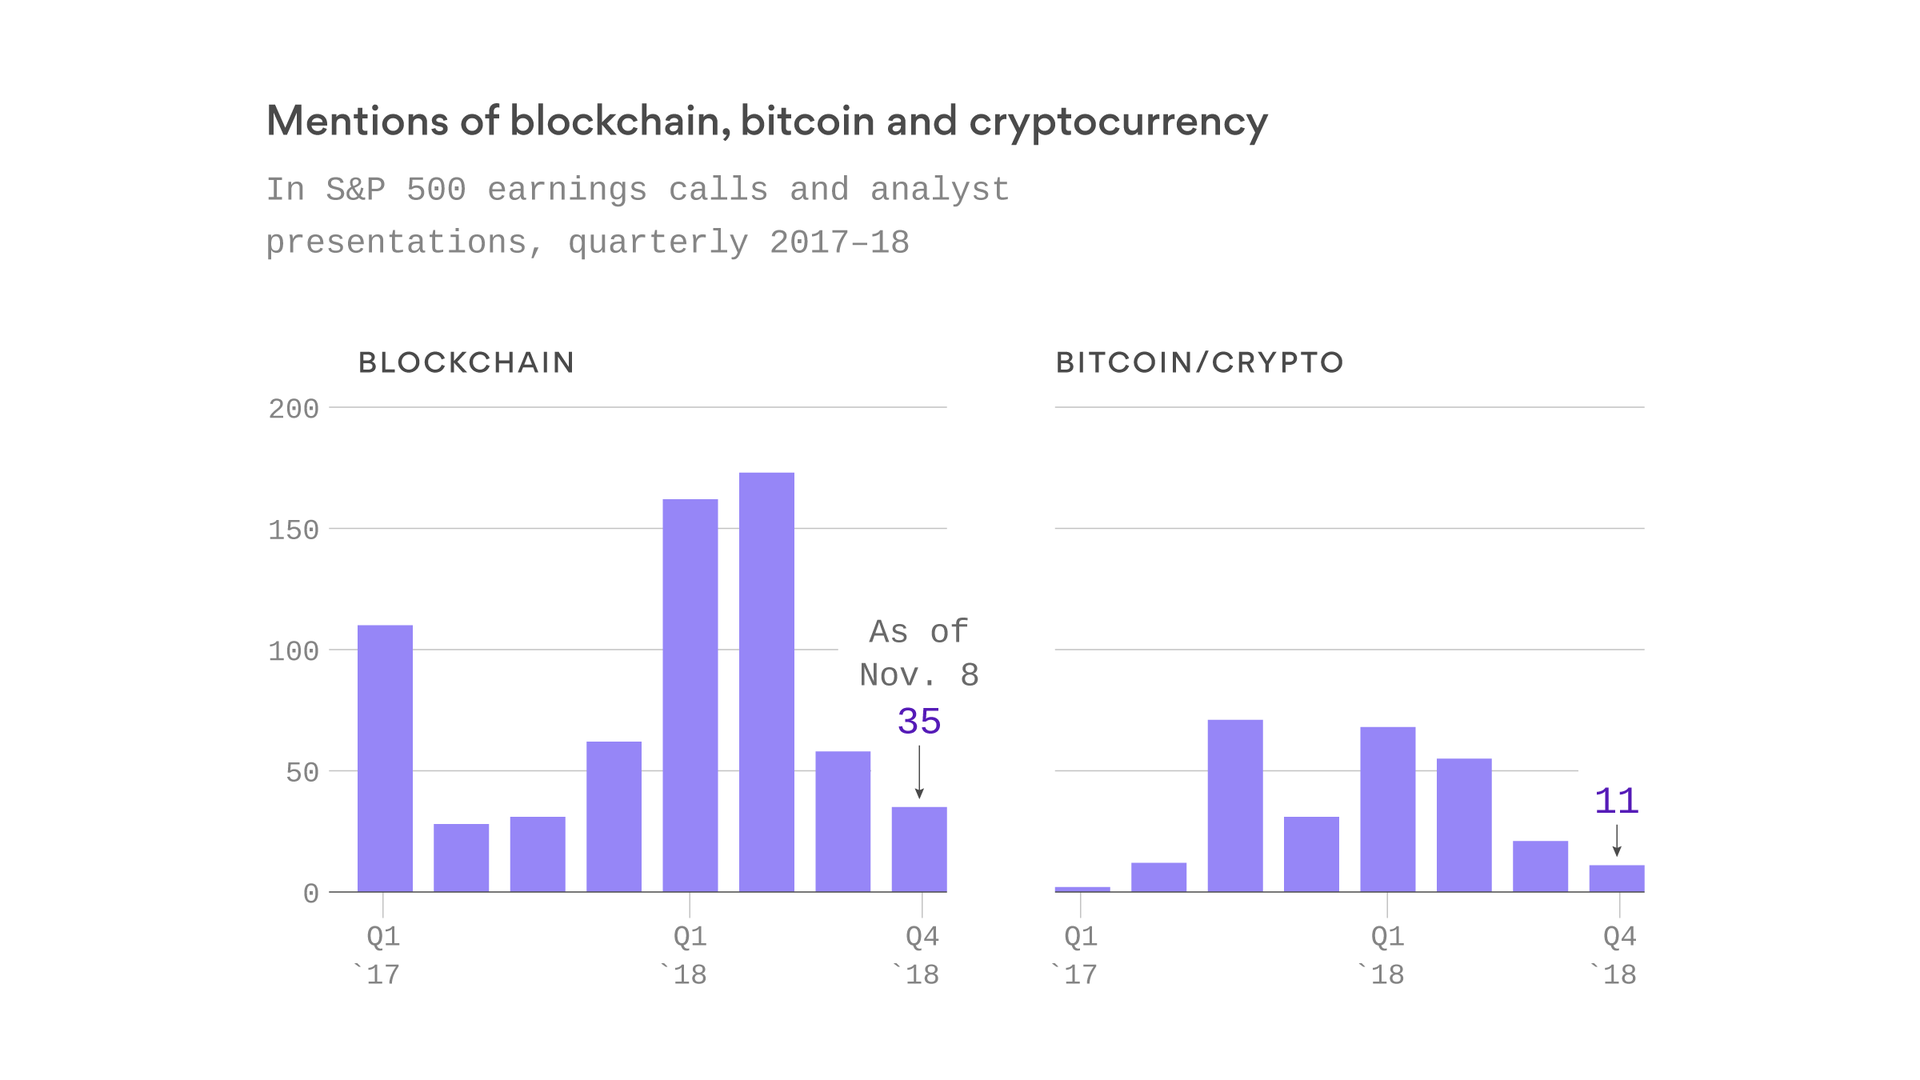 The CEO obsession with bitcoin and blockchain is over